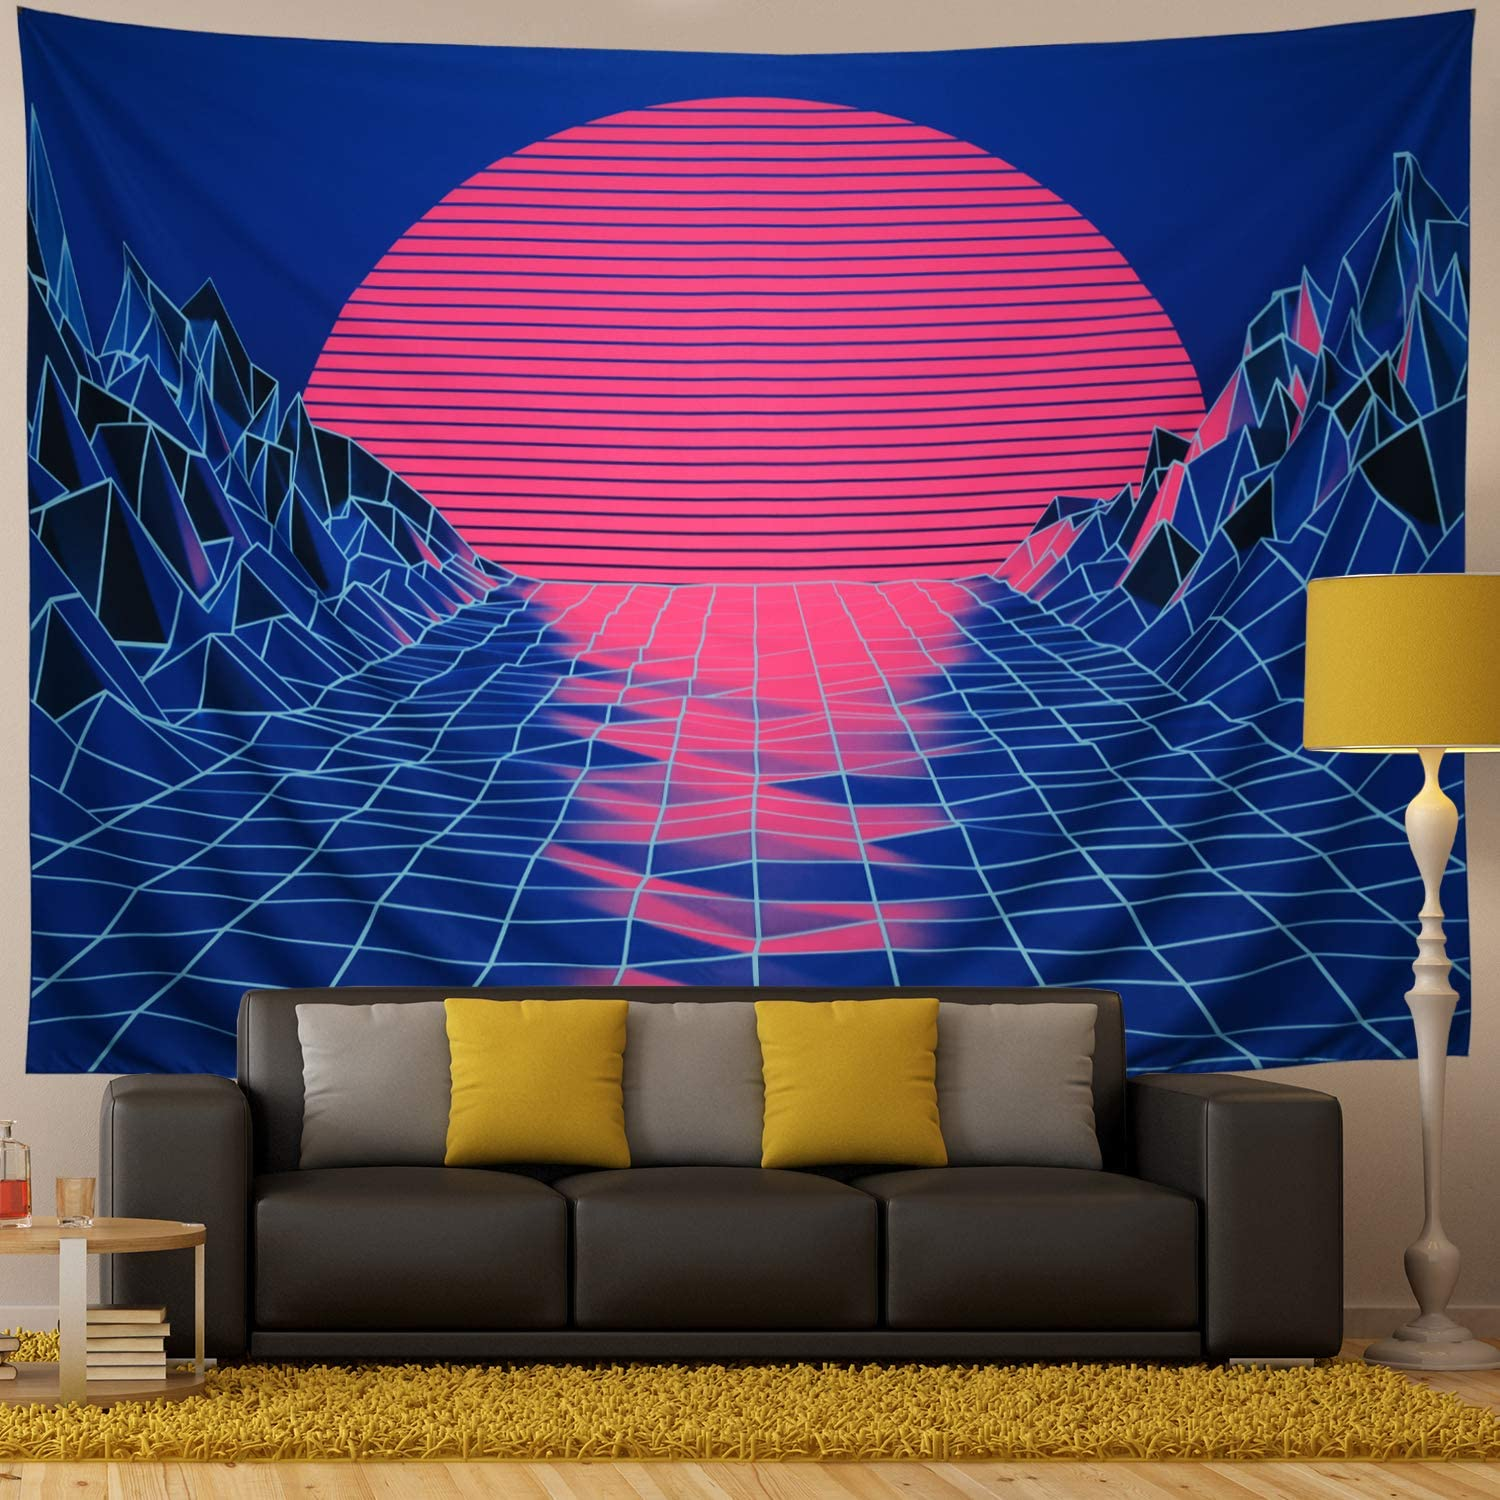 Ameyahud Sun Tapestry Mountain Tapestry Abstract Sketch Mountain River Tapestry Sunset Afterglow Landscape Tapestry for Bedroom W59.1 /× H51.2